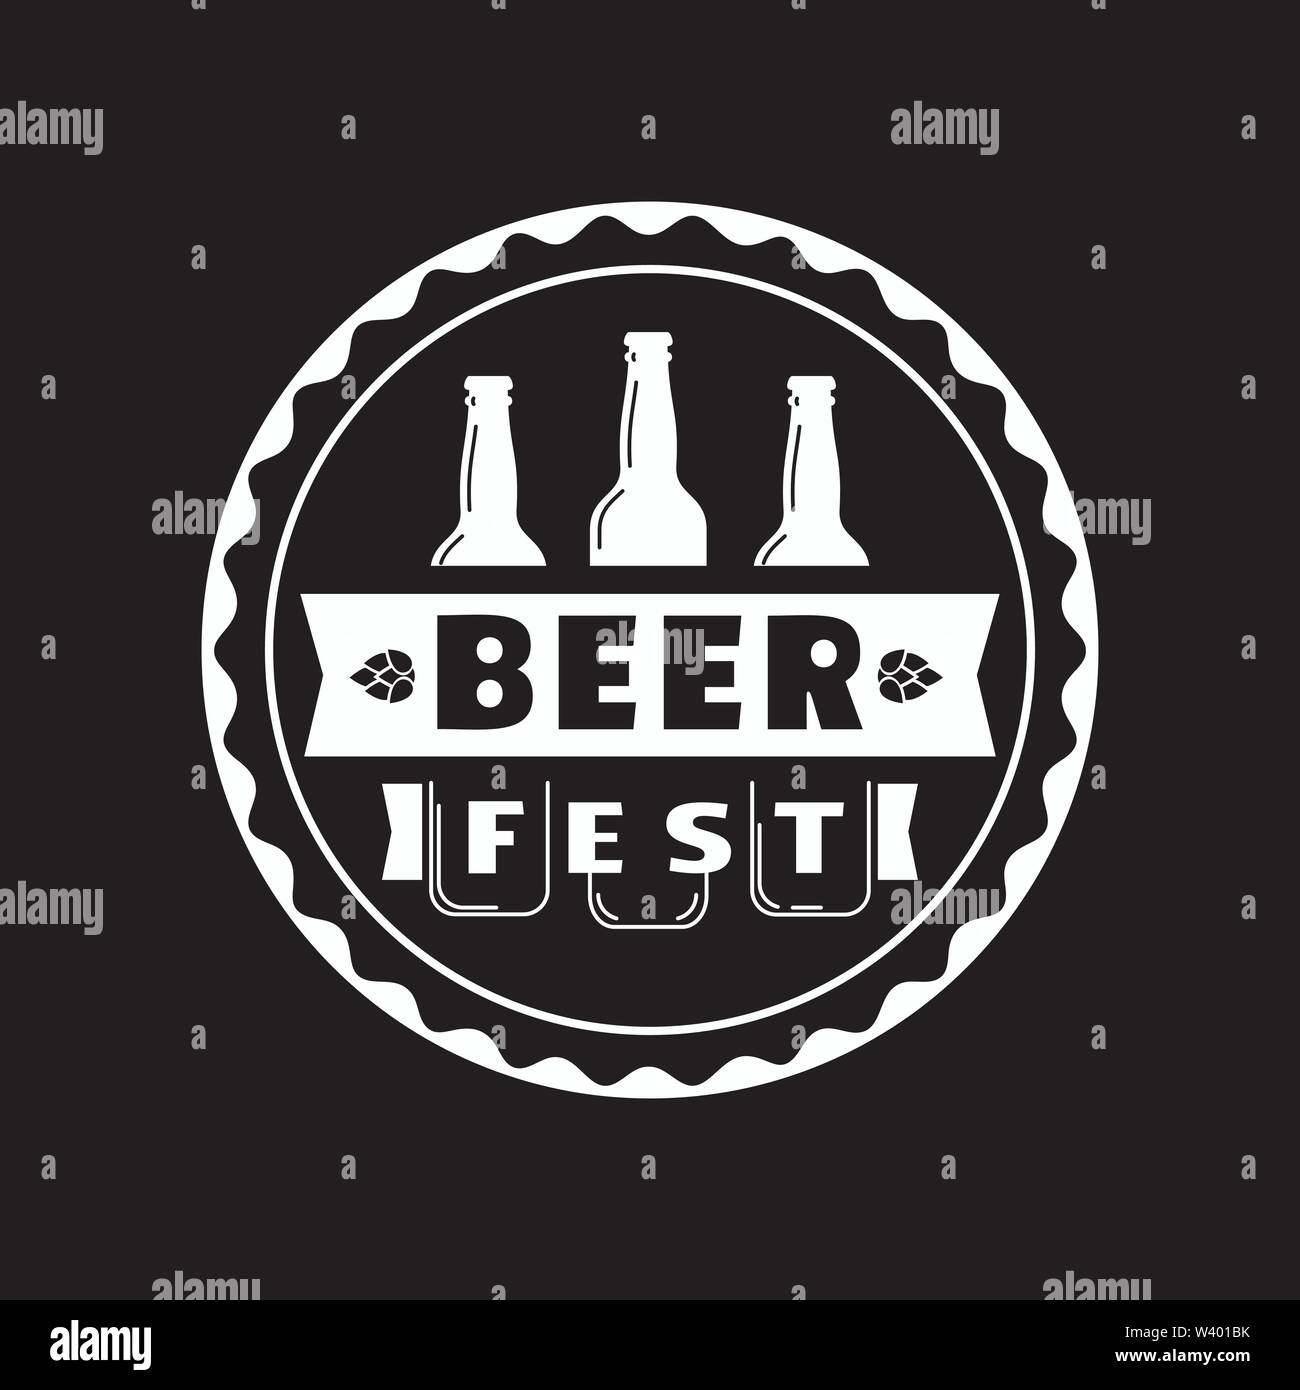 Beer fest hand drawn flat black white vector round icon - Stock Image